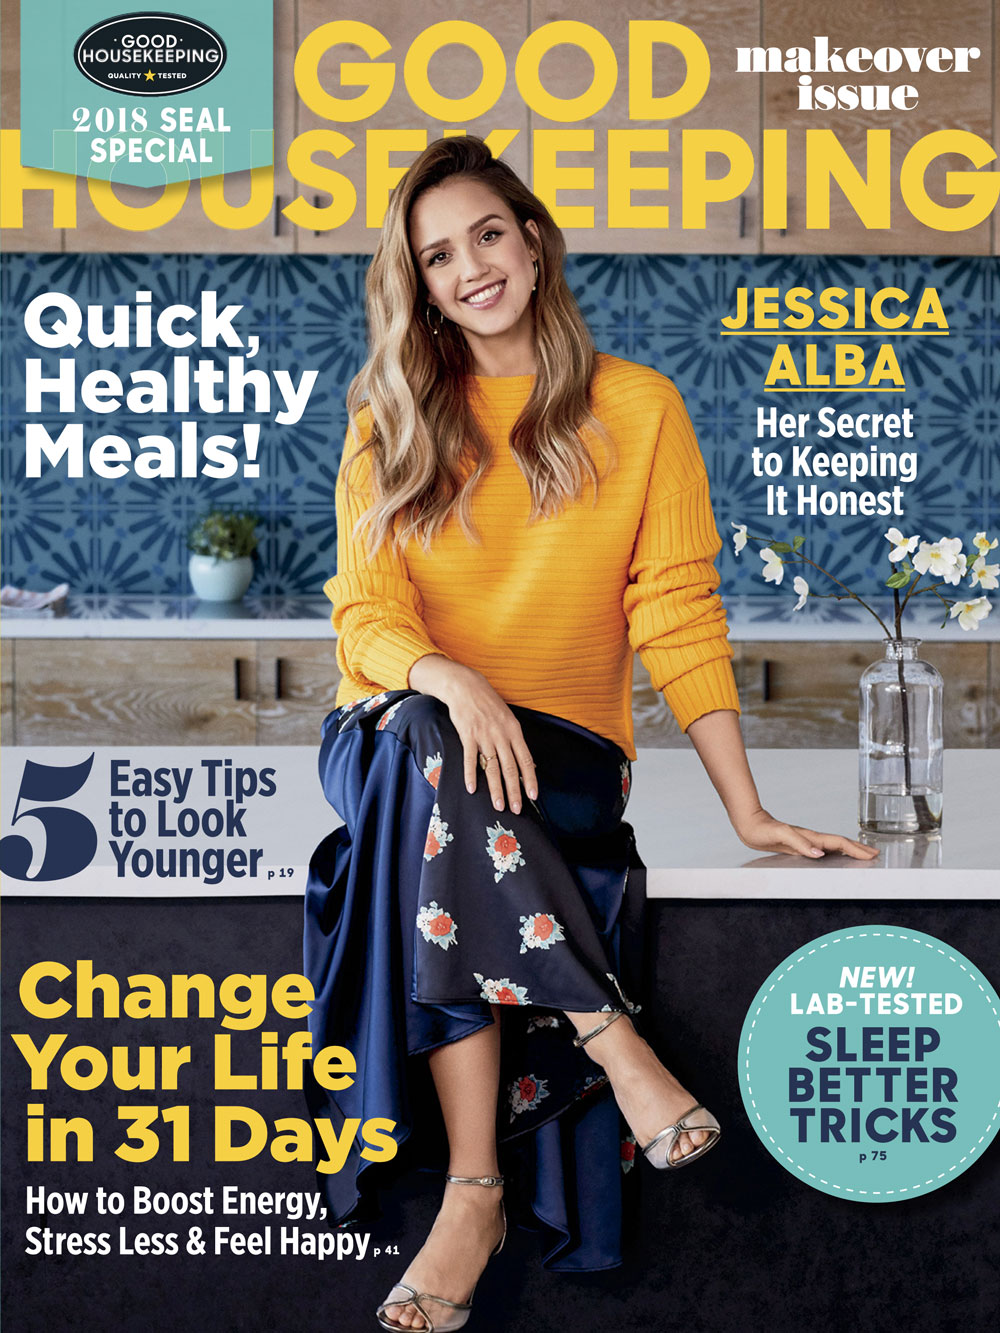 Good Housekeeping 3-month trial offer